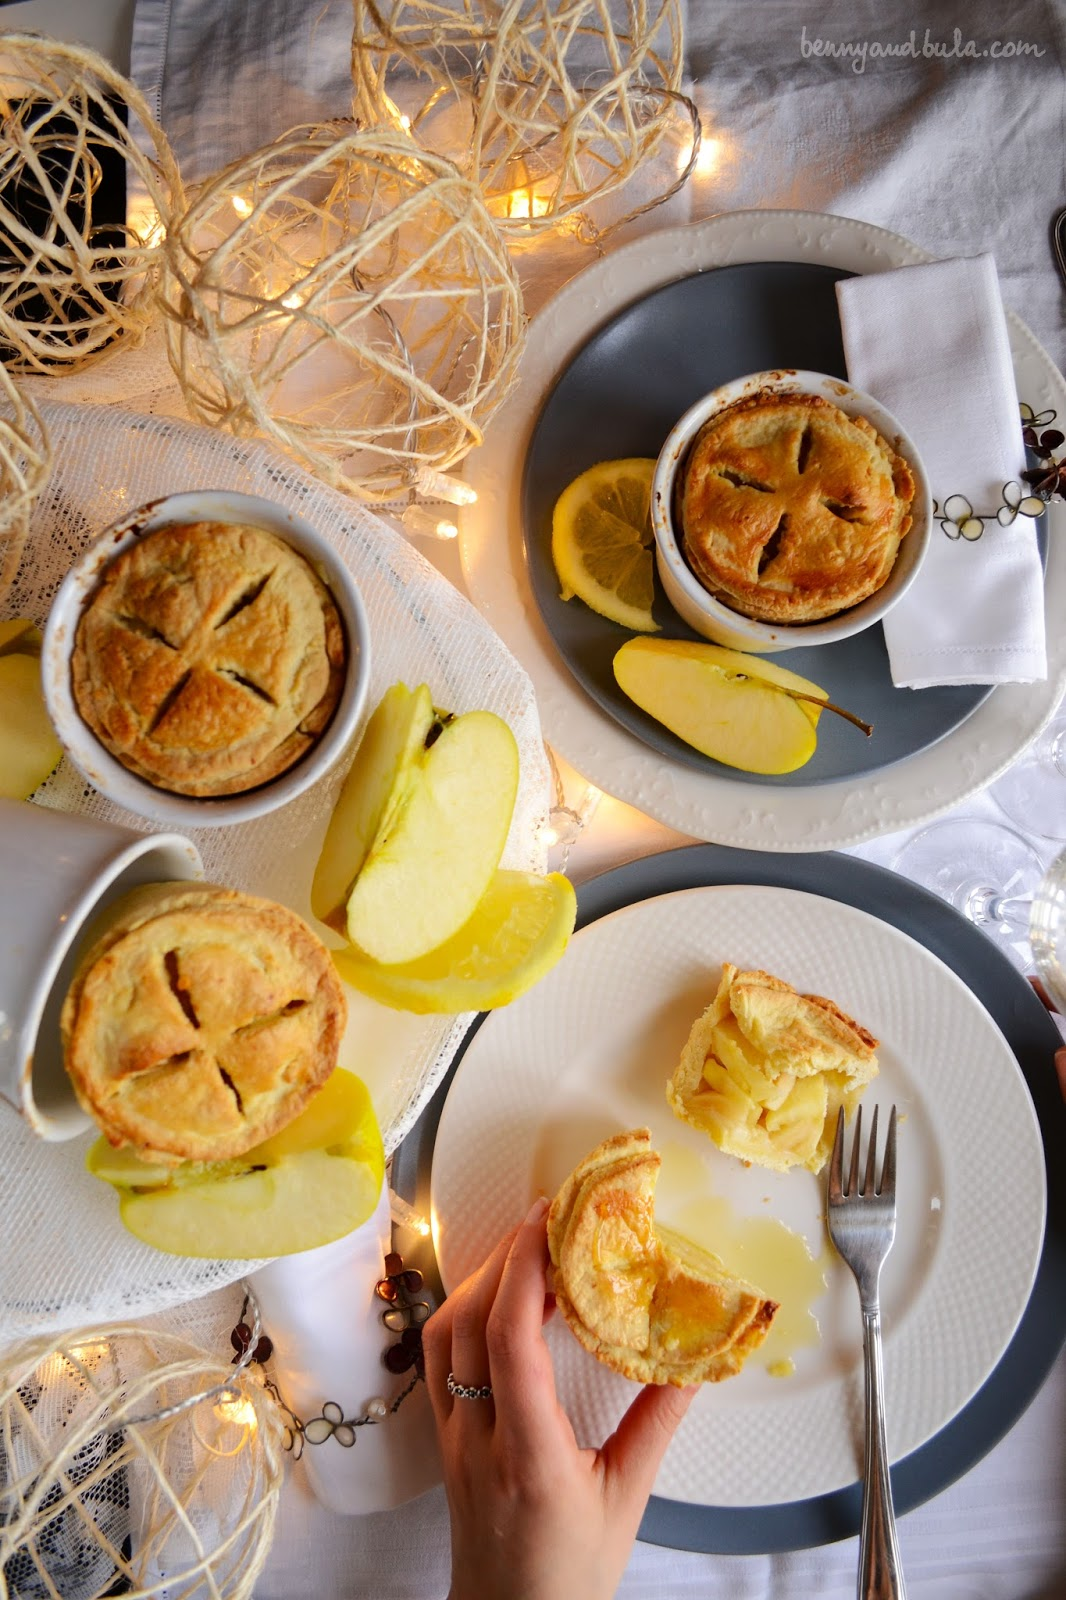 ricetta mini lemon apple pie con mele e limone